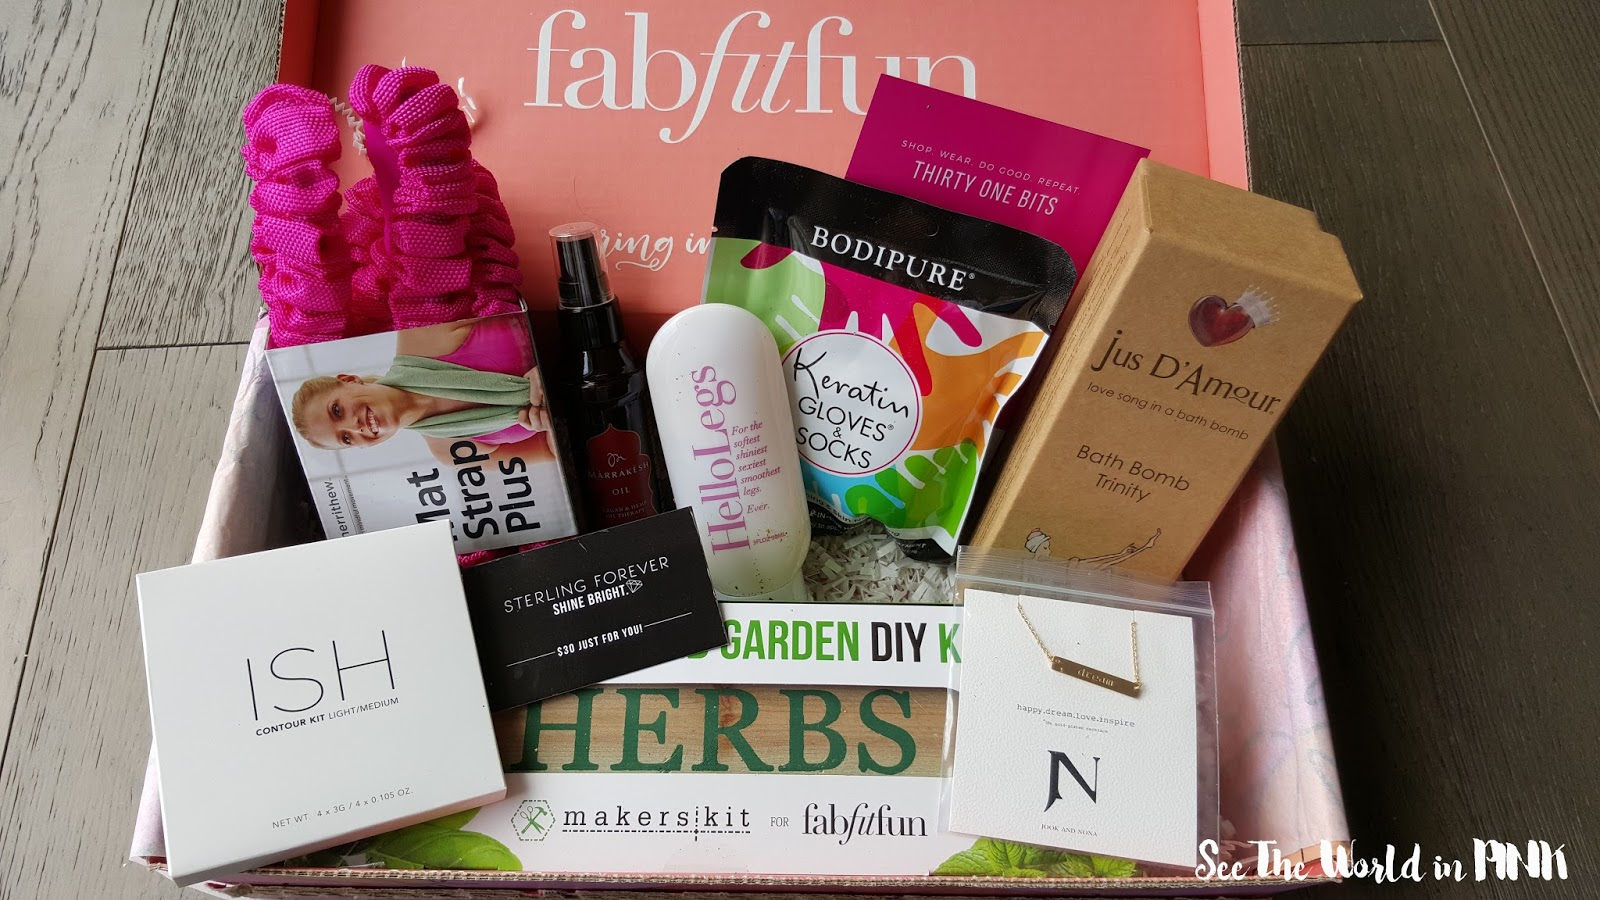 spring 2016 fabfitfun subscription box